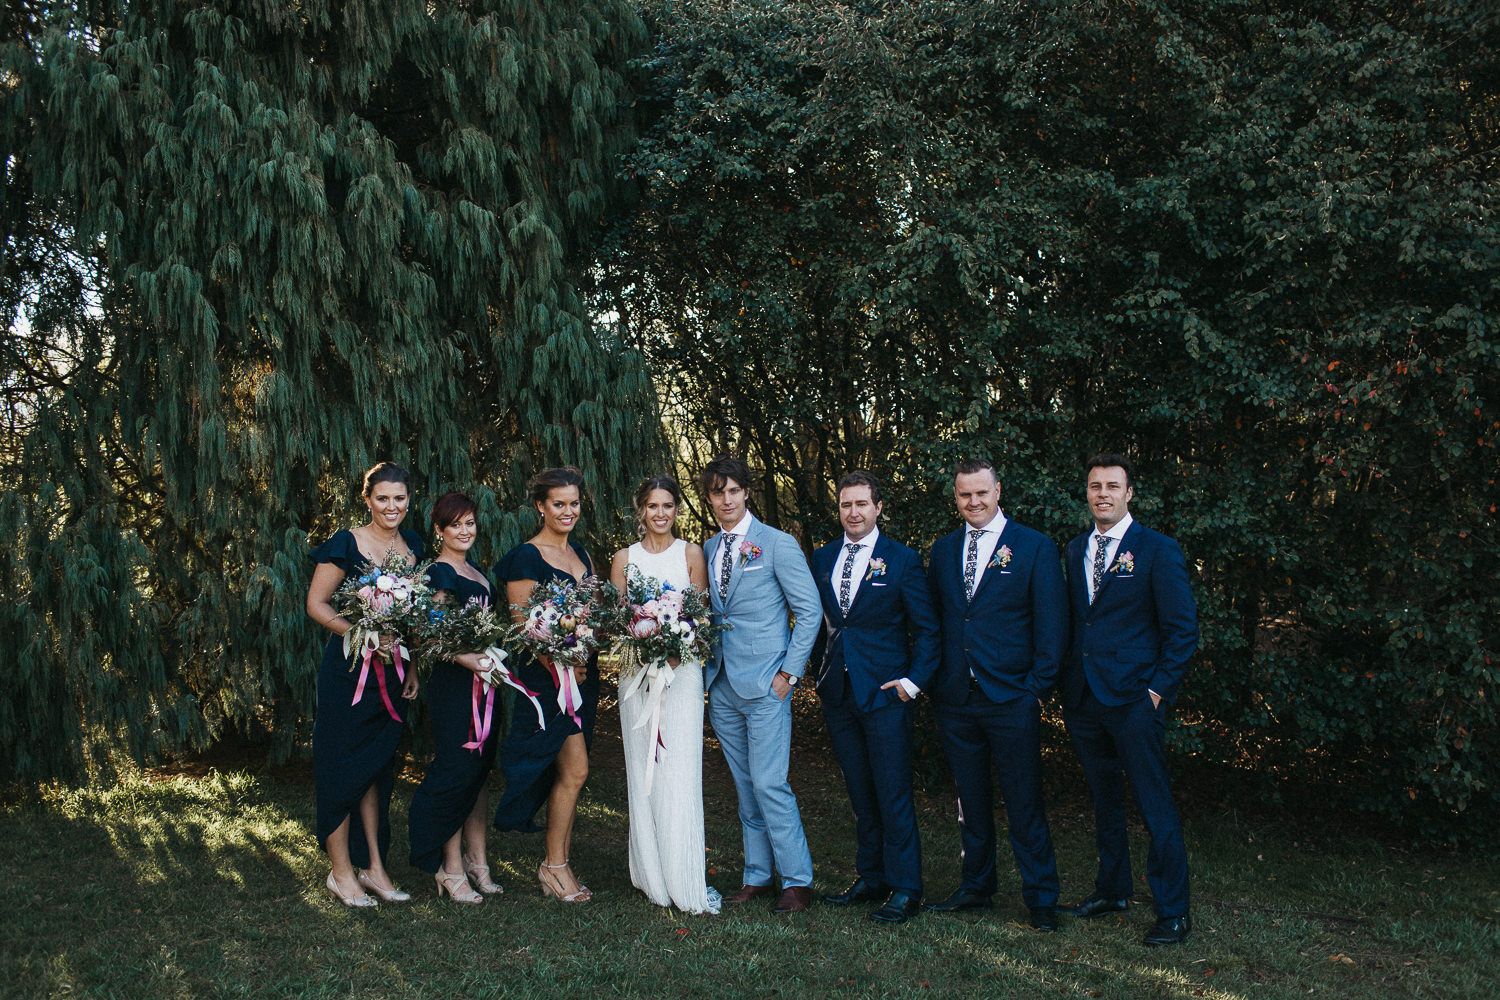 briars-country-lodge-wedding-bowral-nsw-miriam-andy-67